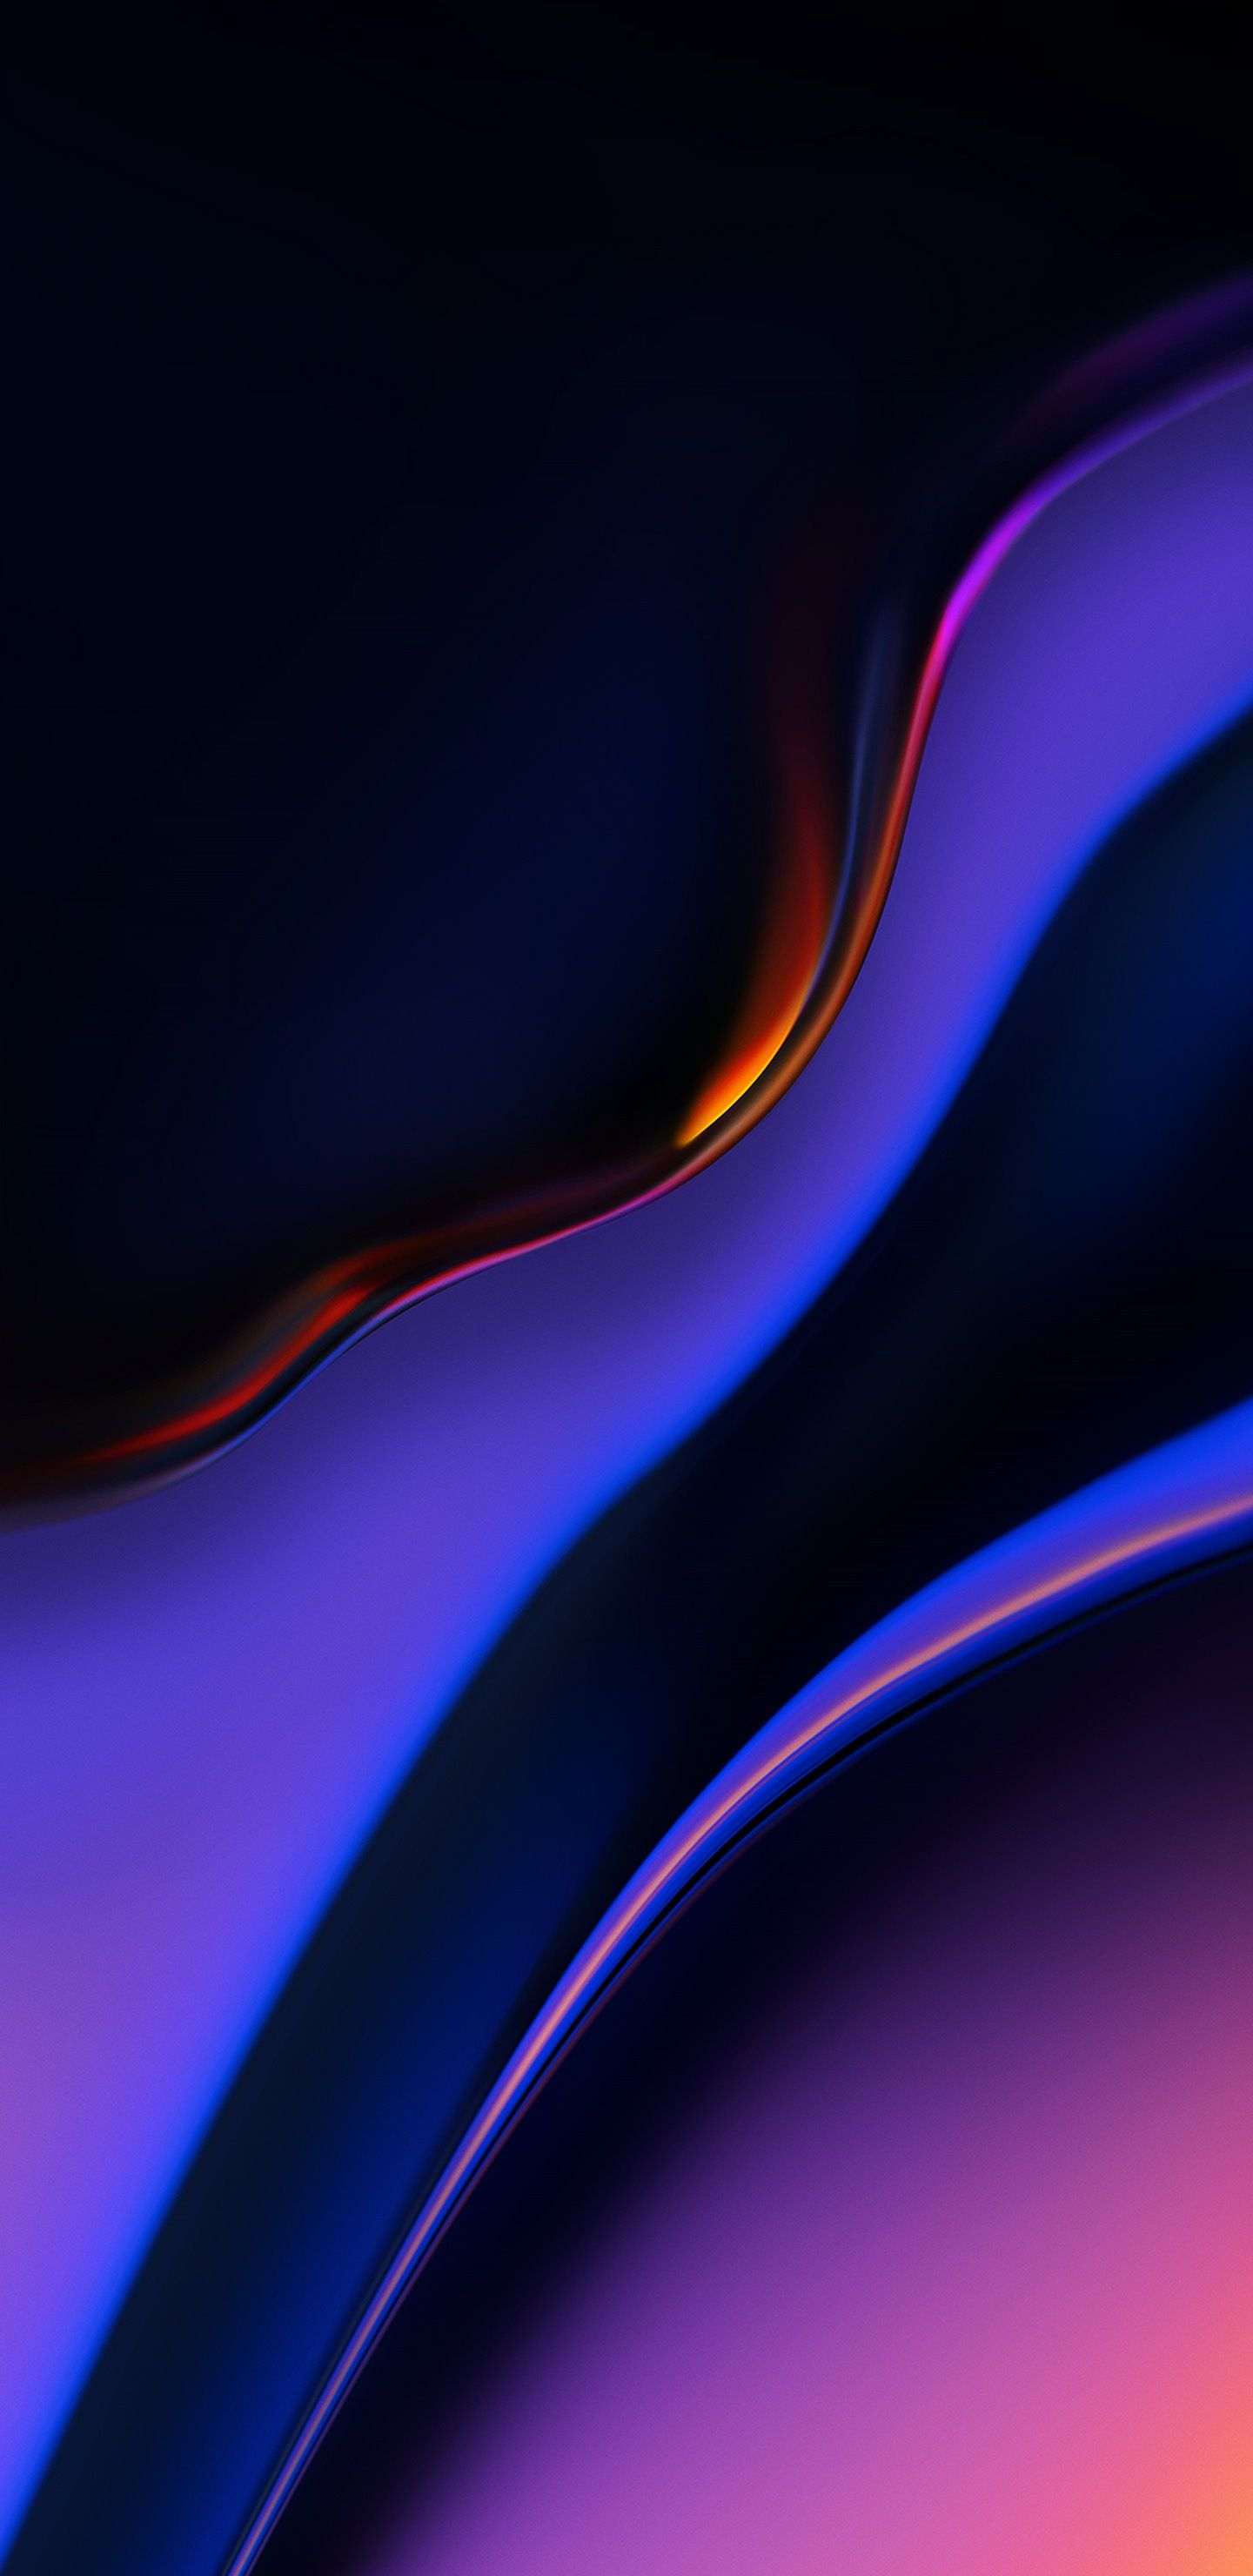 Wallpapers Samsung Galaxy Note 8 | Cover Photos, Wallpapers, etc | Oneplus wallpapers, Apple ...